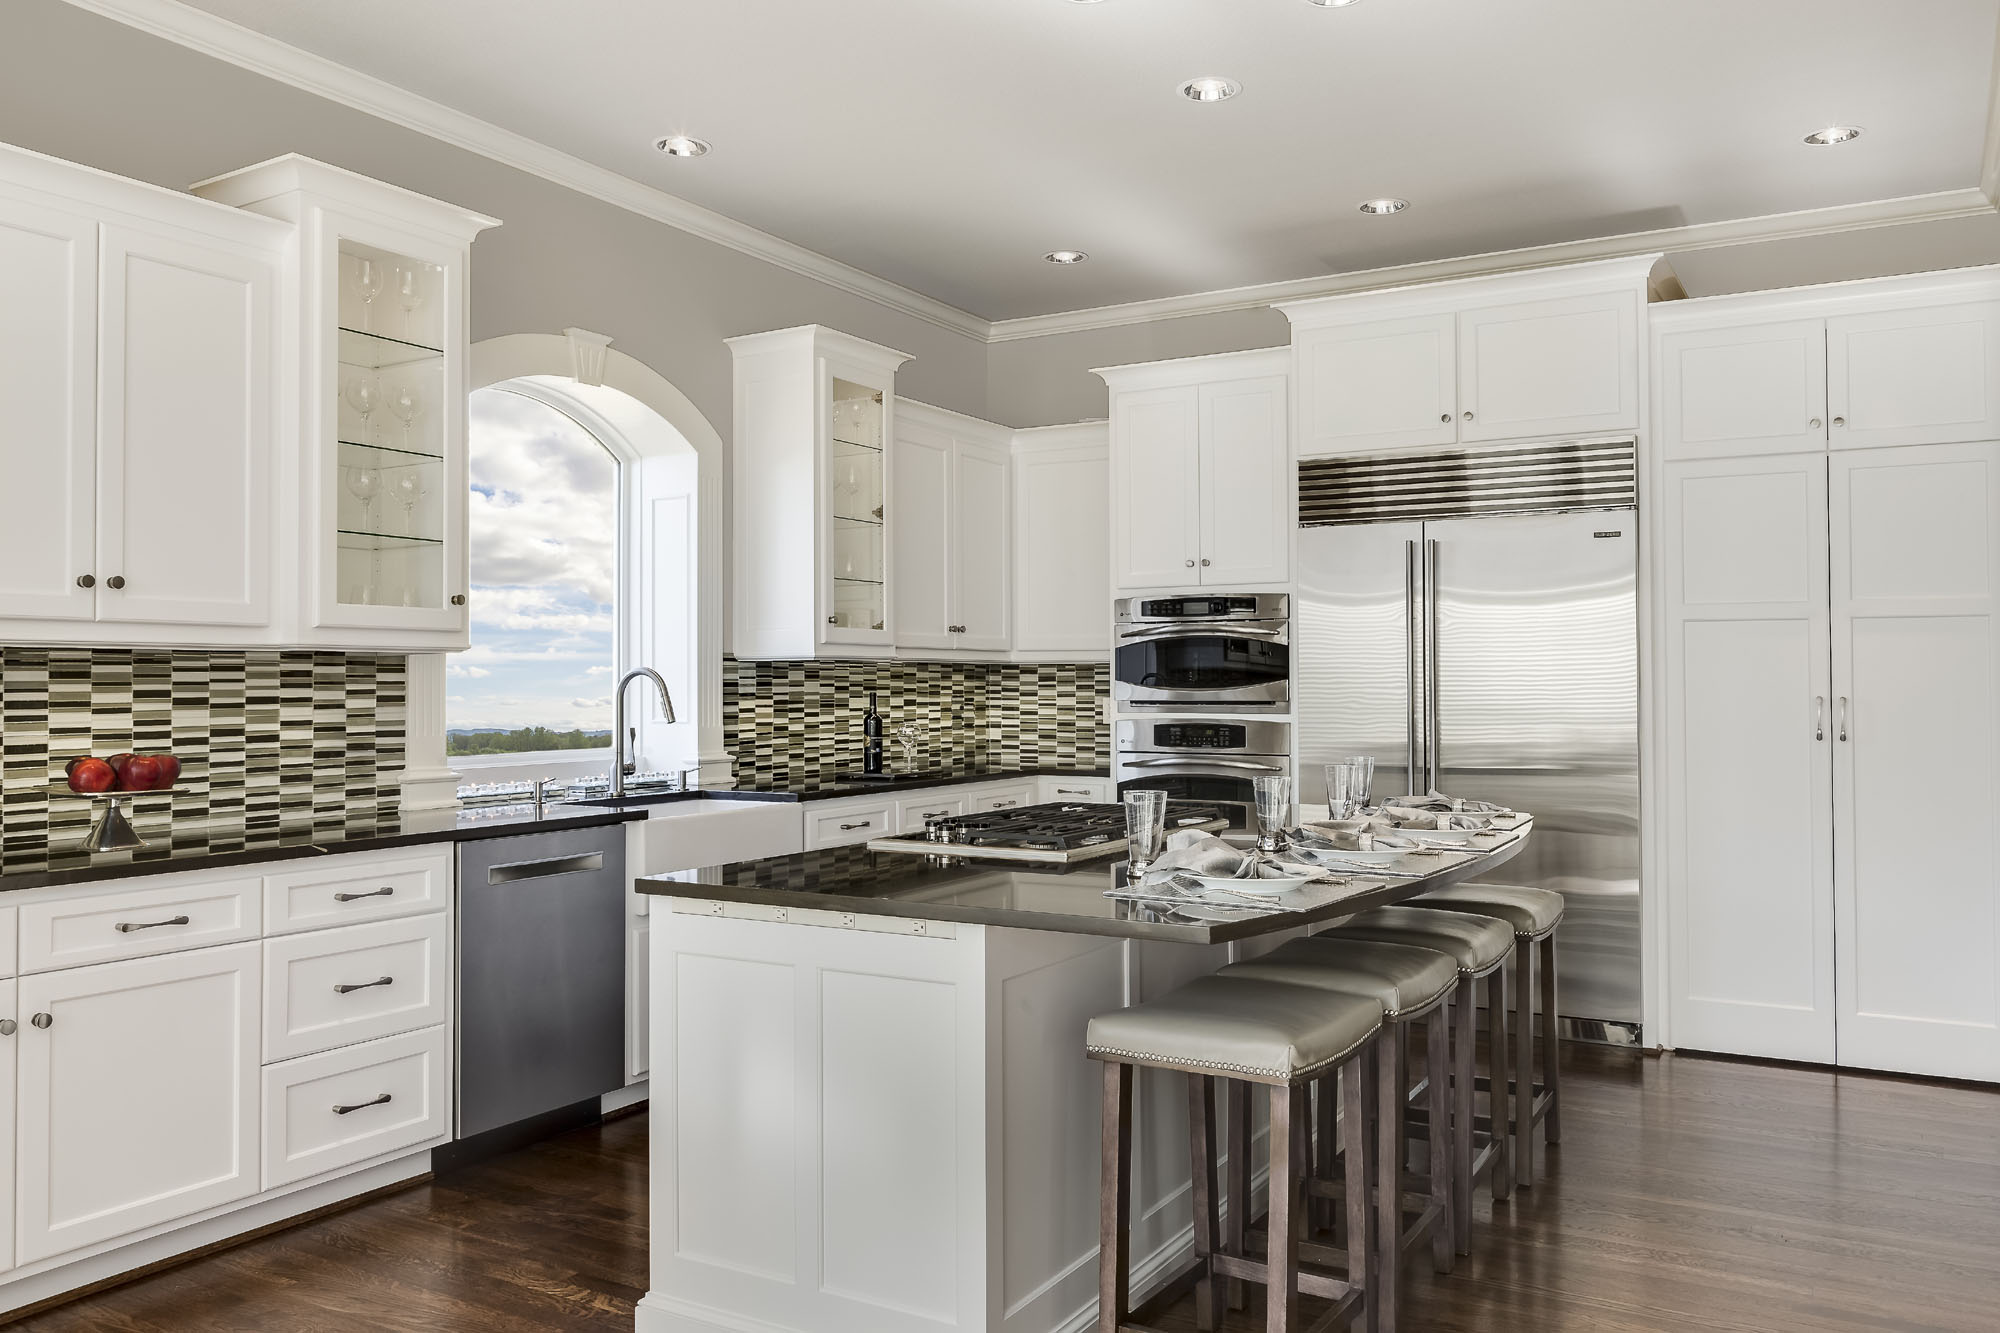 Kansas city homes style features our project kitchens for A kitchen connection